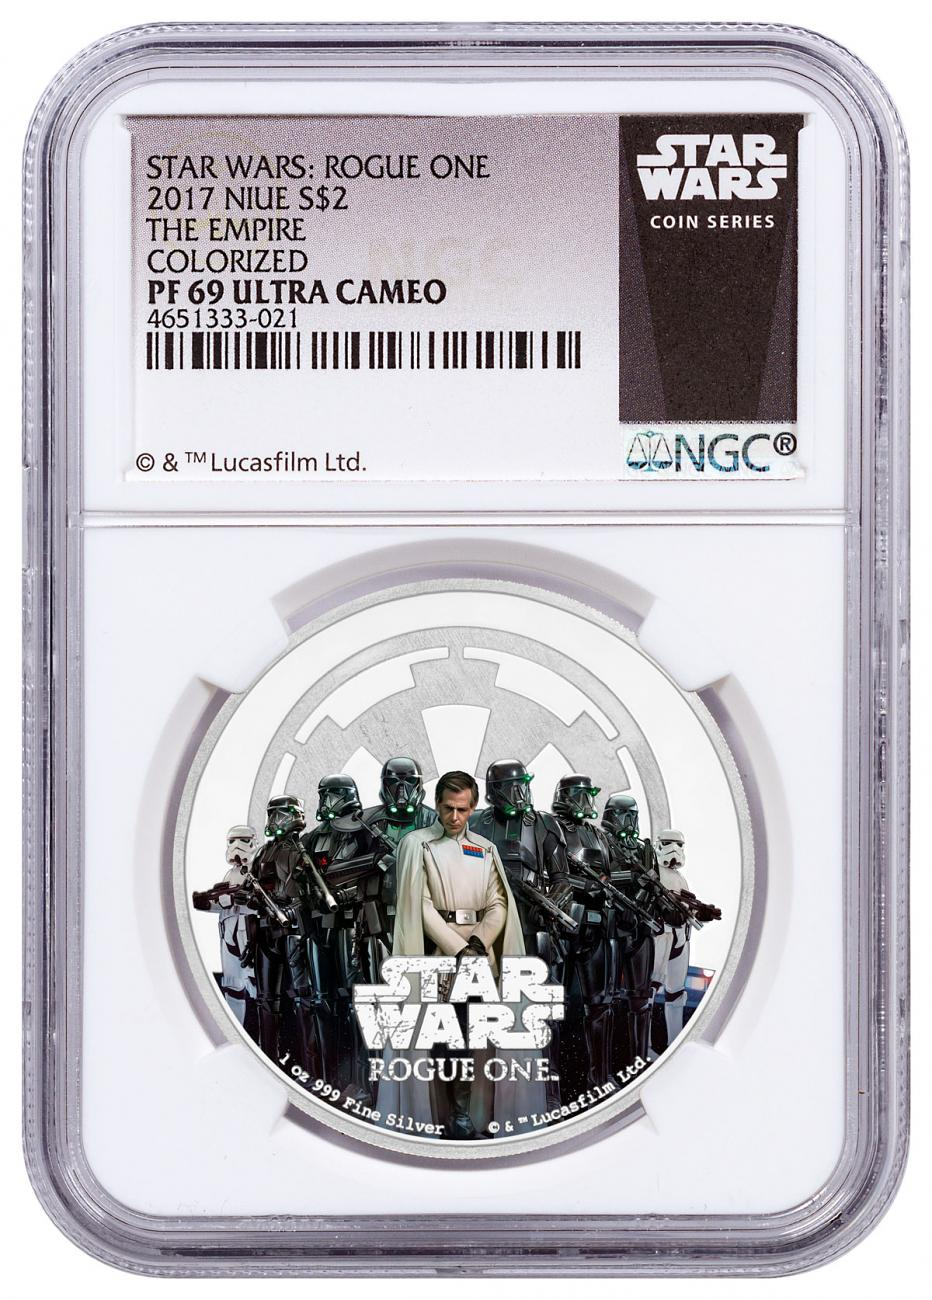 2017 Niue Star Wars: Rogue One - Empire 1 oz Silver Colorized Proof $2 NGC PF69 Exclusive Star Wars Label